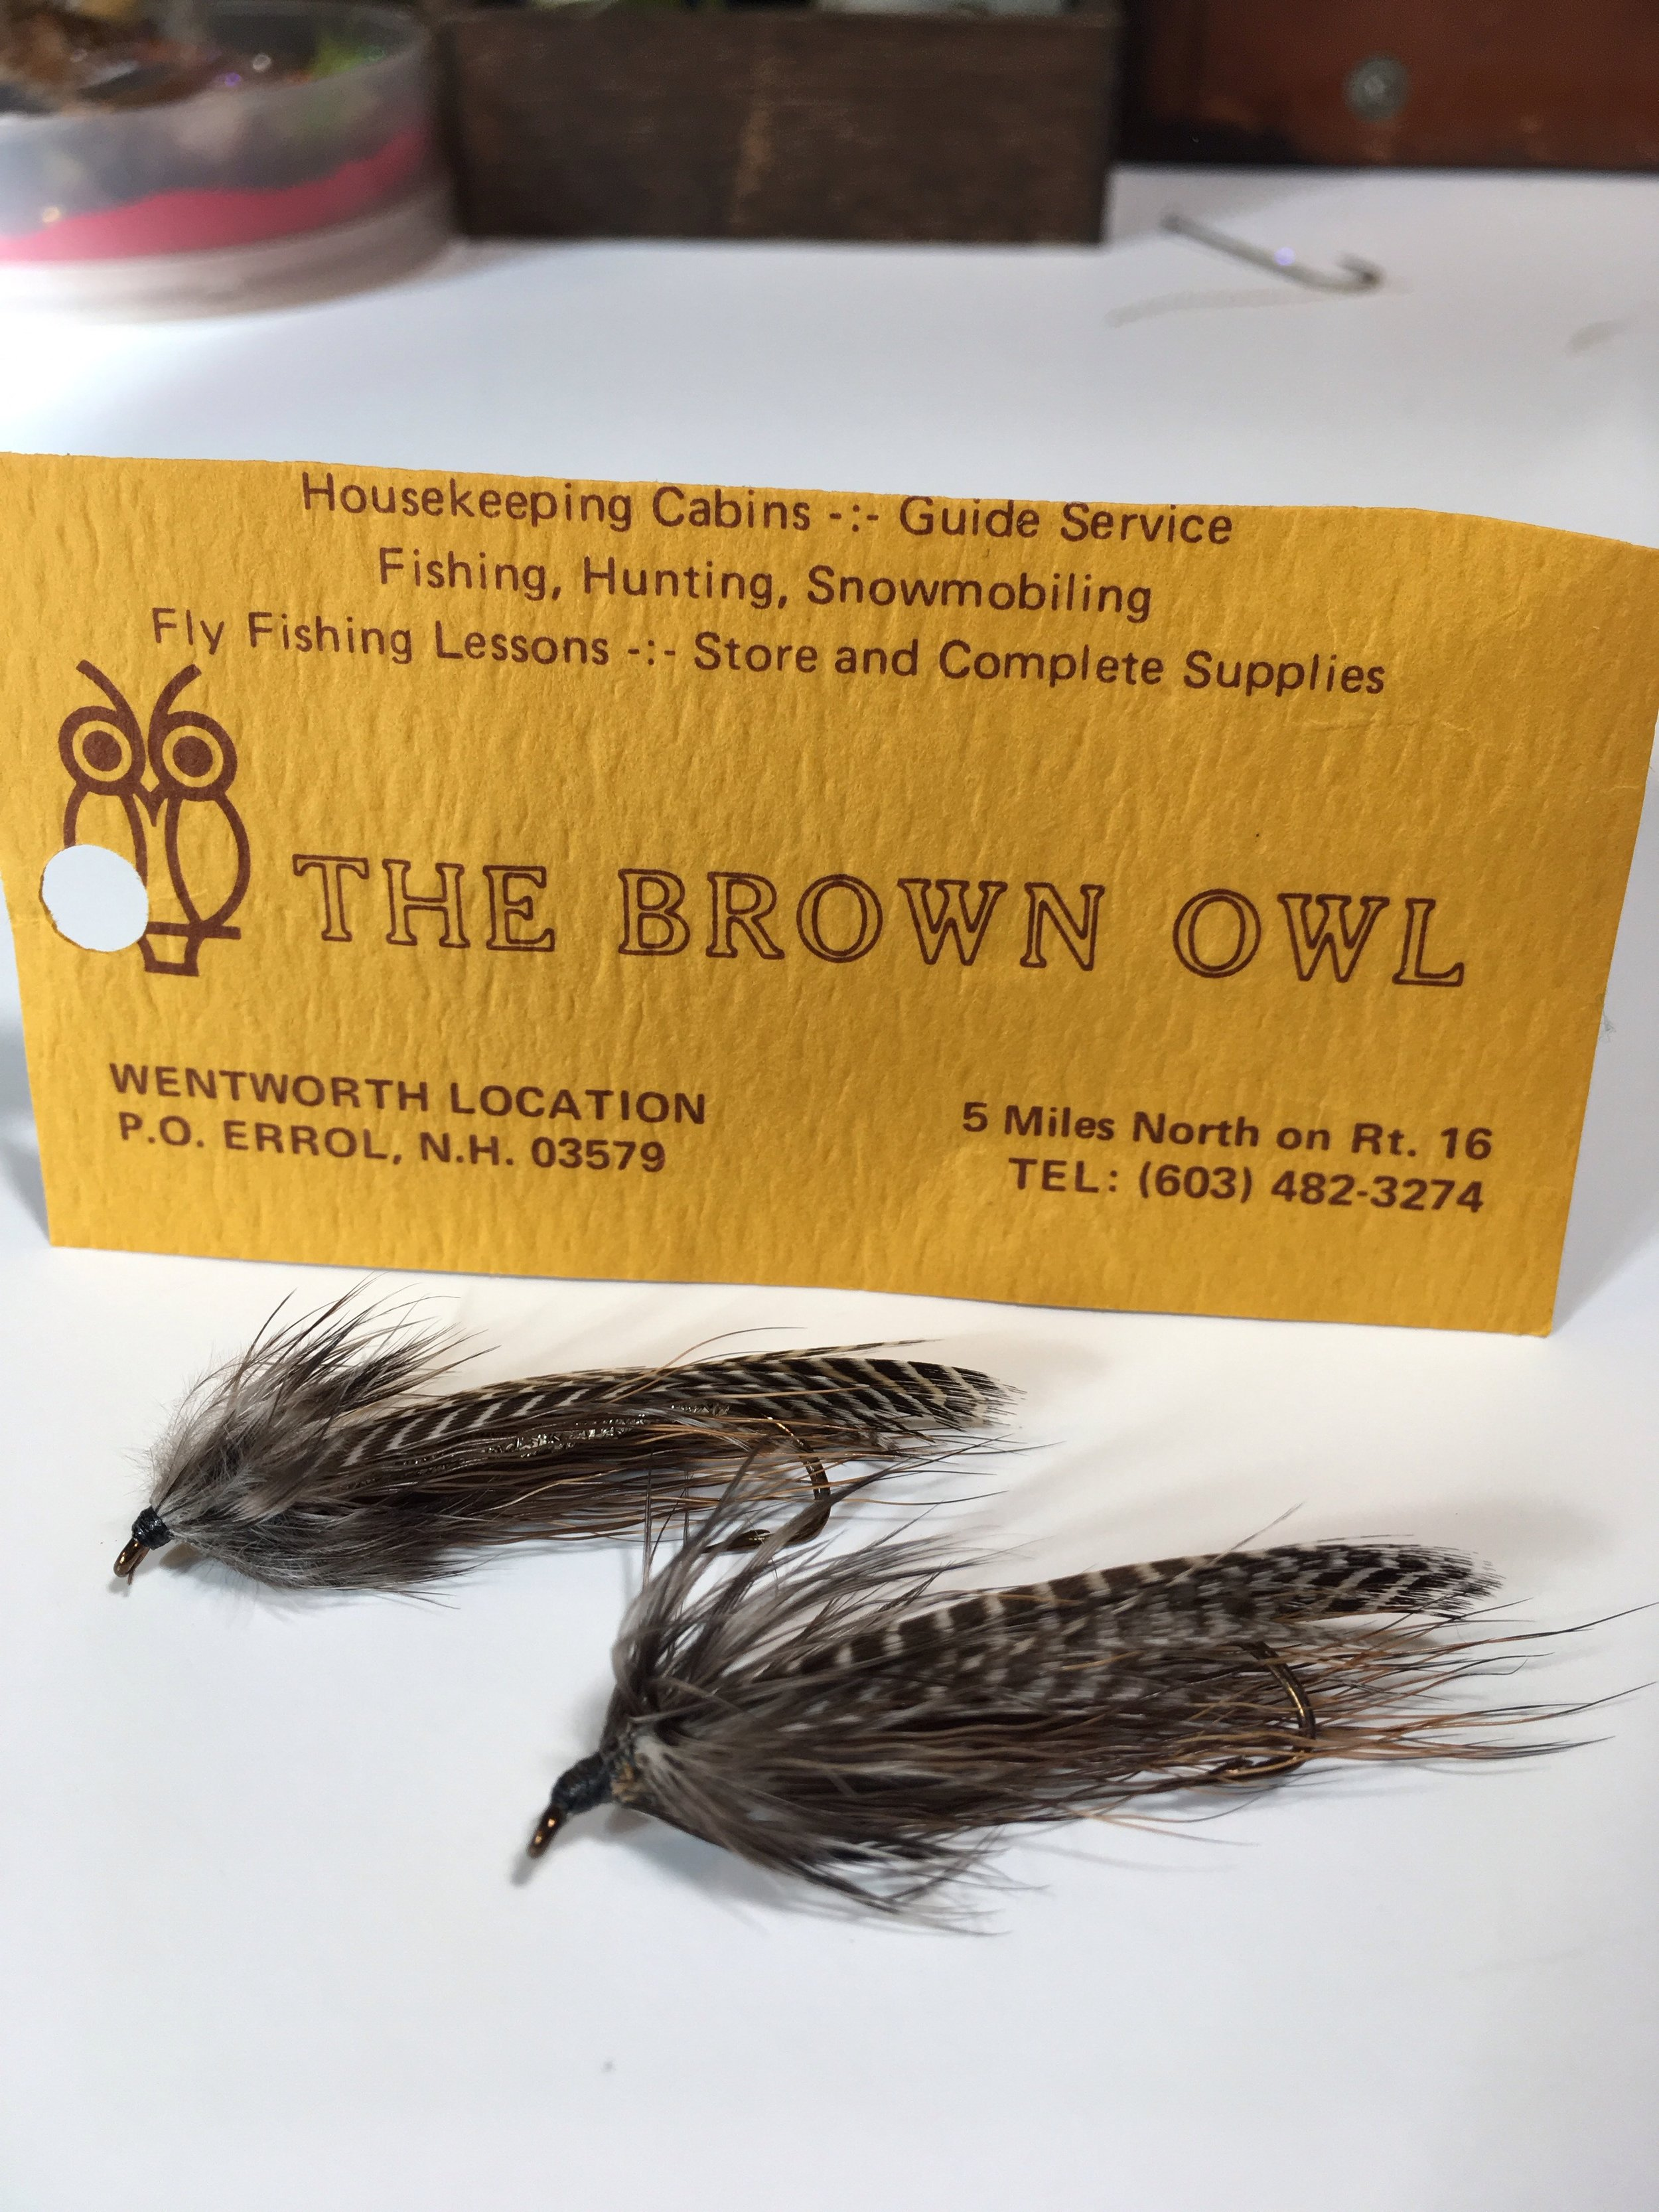 The original Brown Owl, courtesy of John McConochie. This style of streamer does very well on the New England waters that I fish for trout and landlocked salmon.